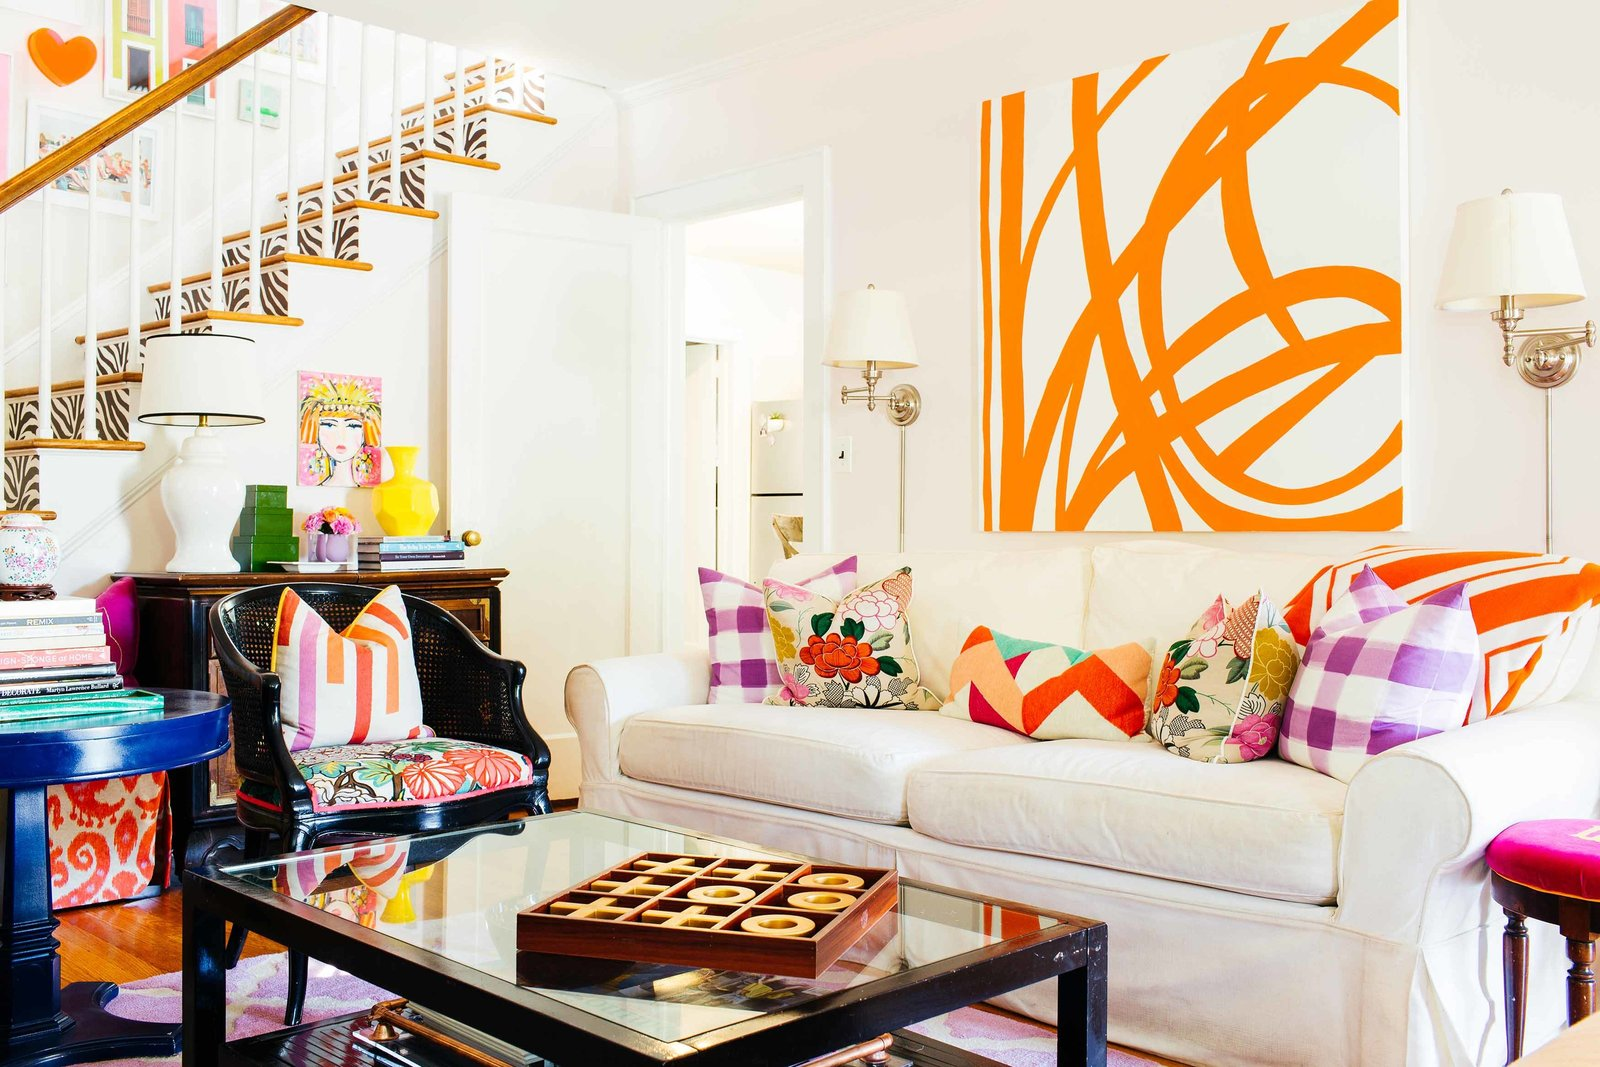 A colorfully decorated living space in Westbury, NY.